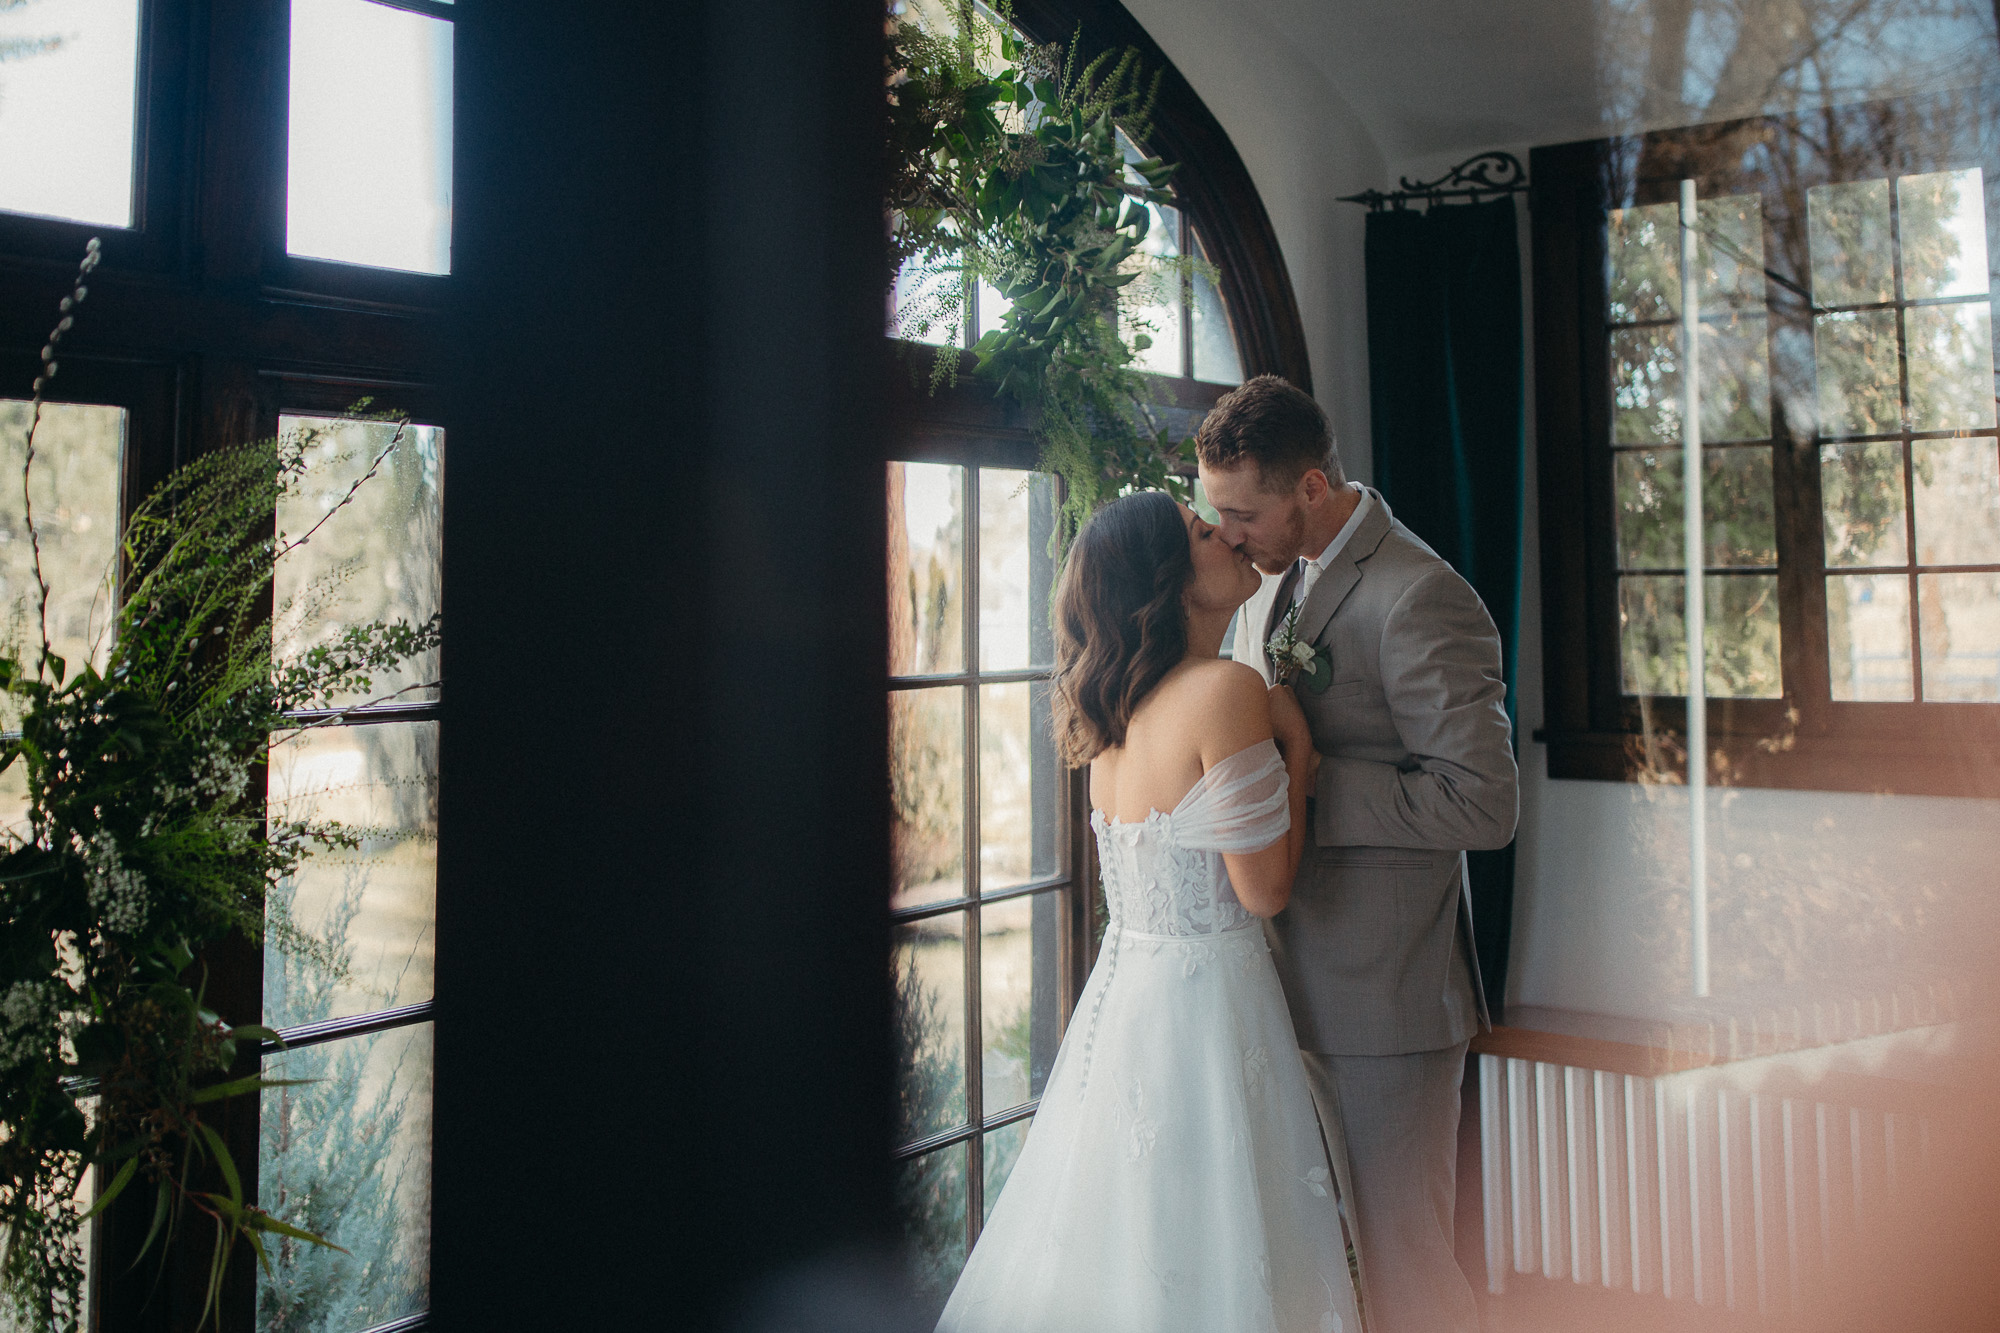 Inspirational wedding shoot at one of our favorite Eagle, Idaho venues. The whole concept of this shoot was to keep the style simple and not take away attention from the Spanish revival home. Being wedding photographers & cinematographers we always appreciate beautifully lit spaces